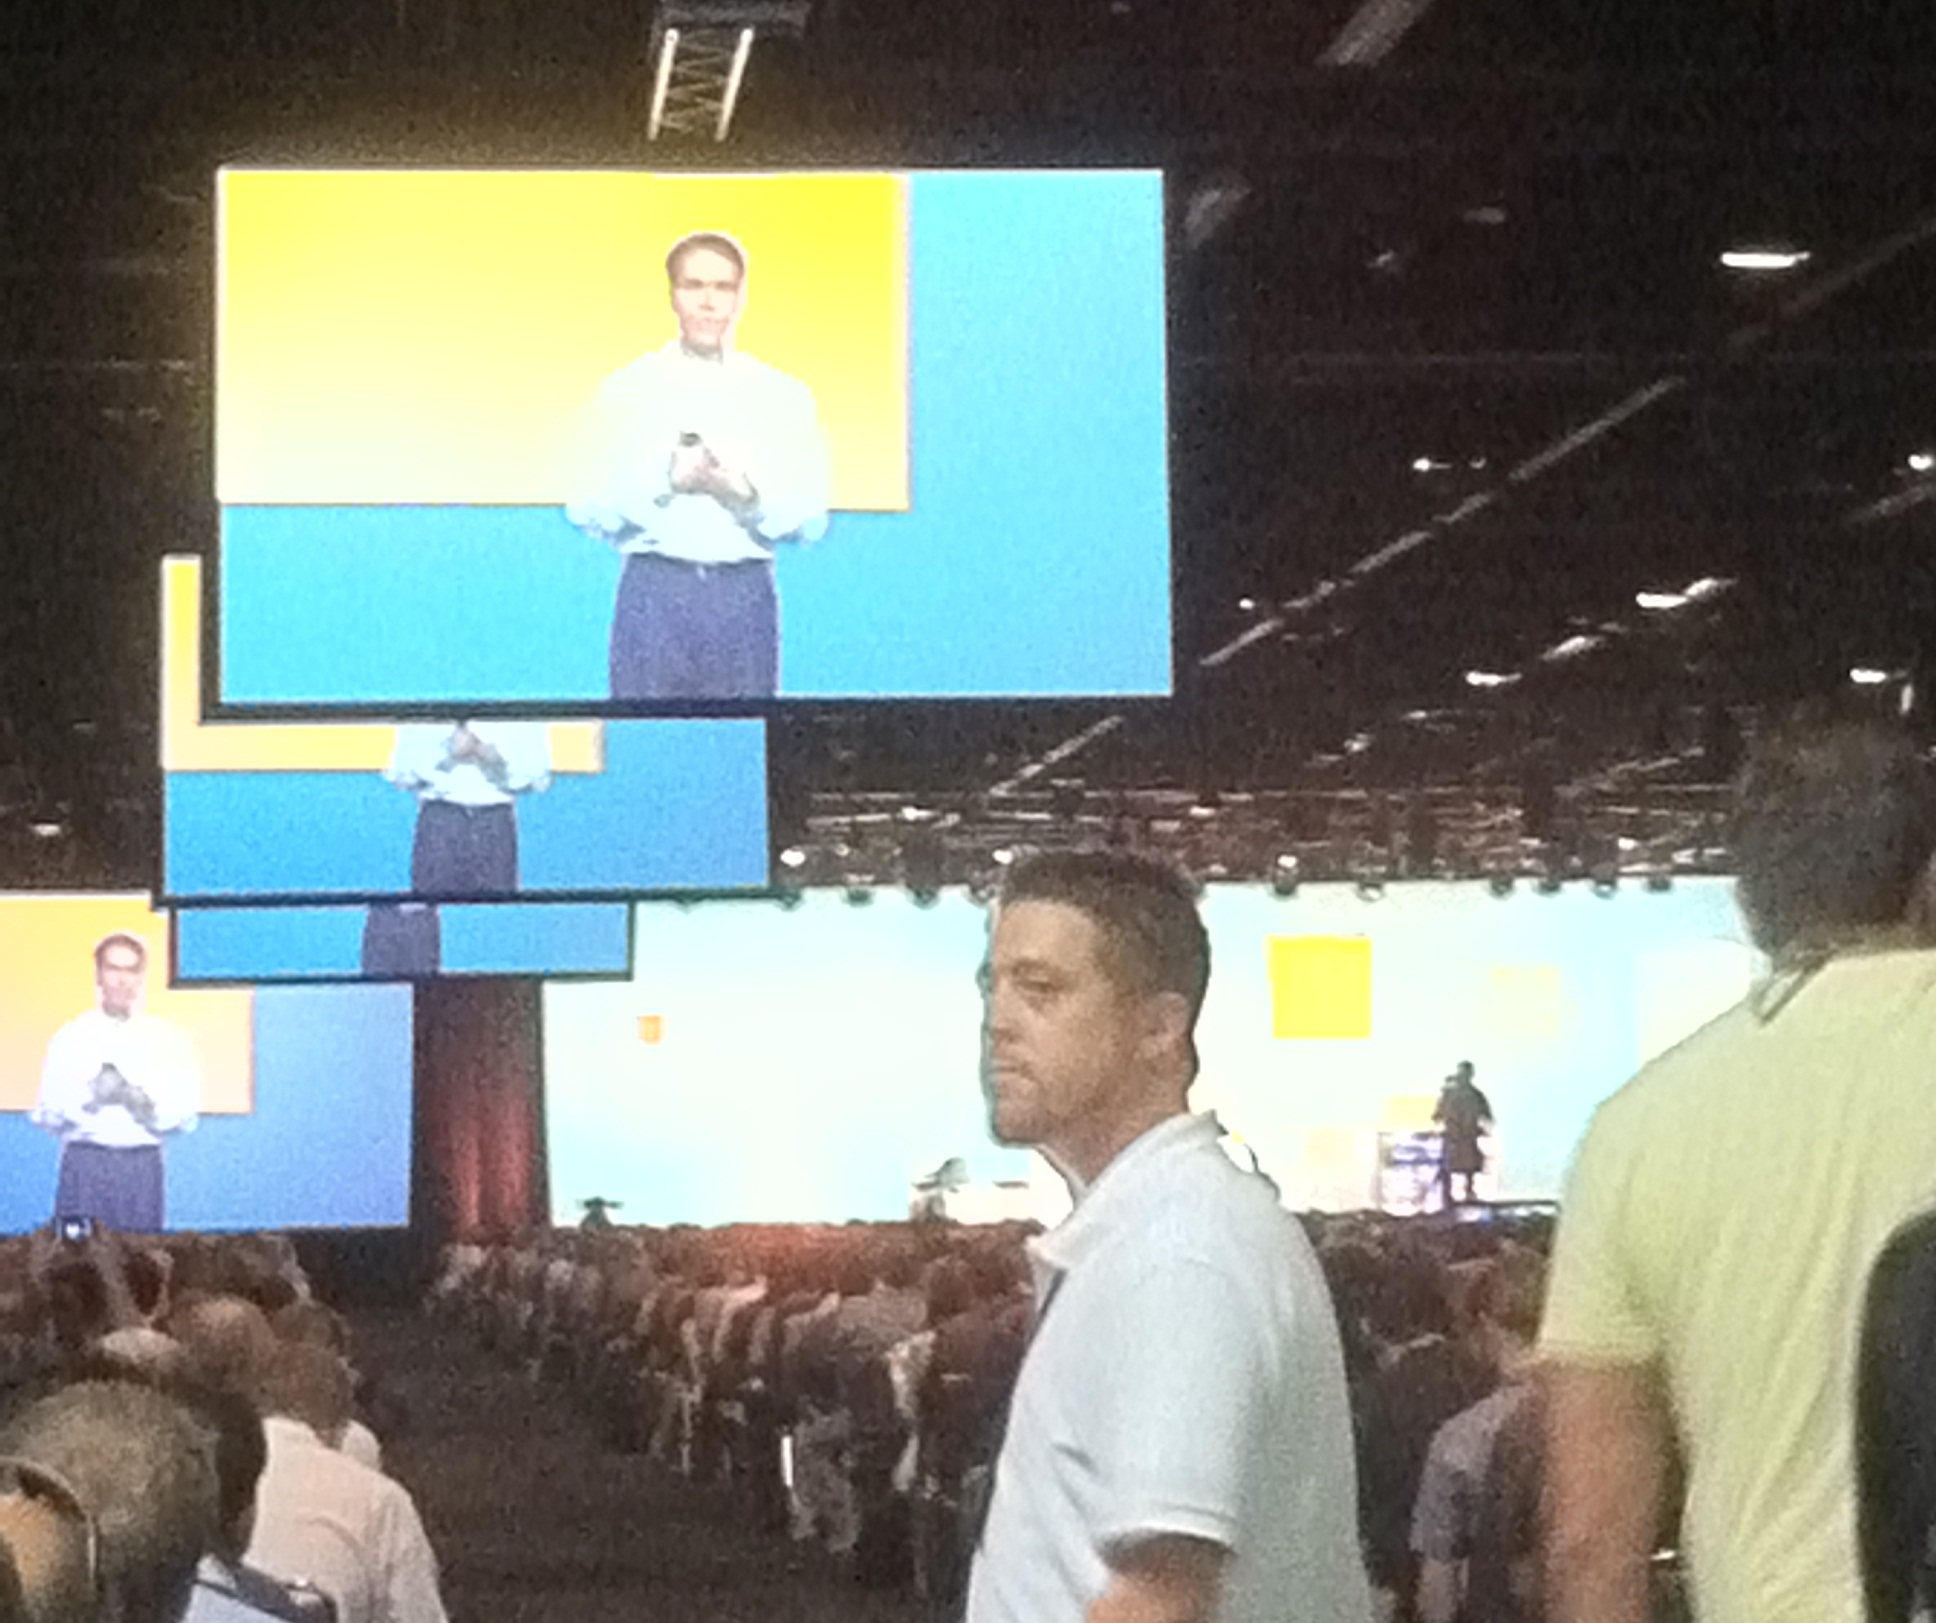 Jeff Teper at Microsoft SharePoint Conference 2011